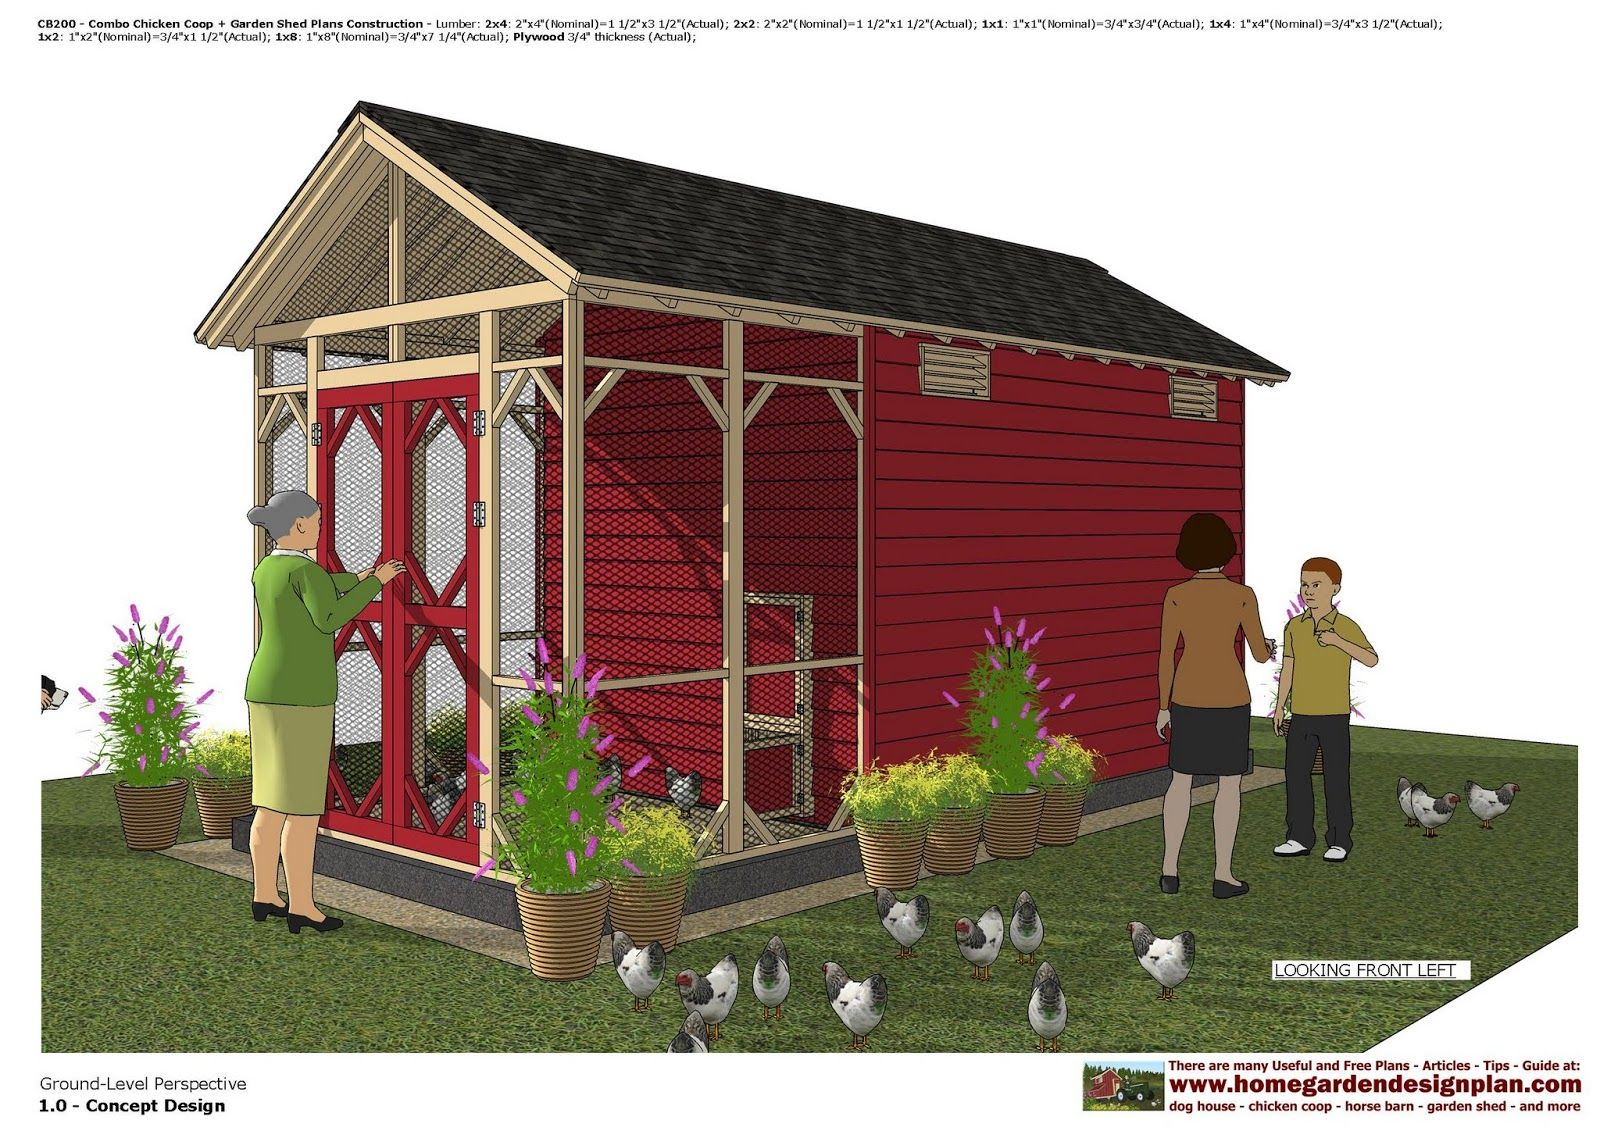 home garden plans: CB200 _ Combo Chicken Coop + Garden ...